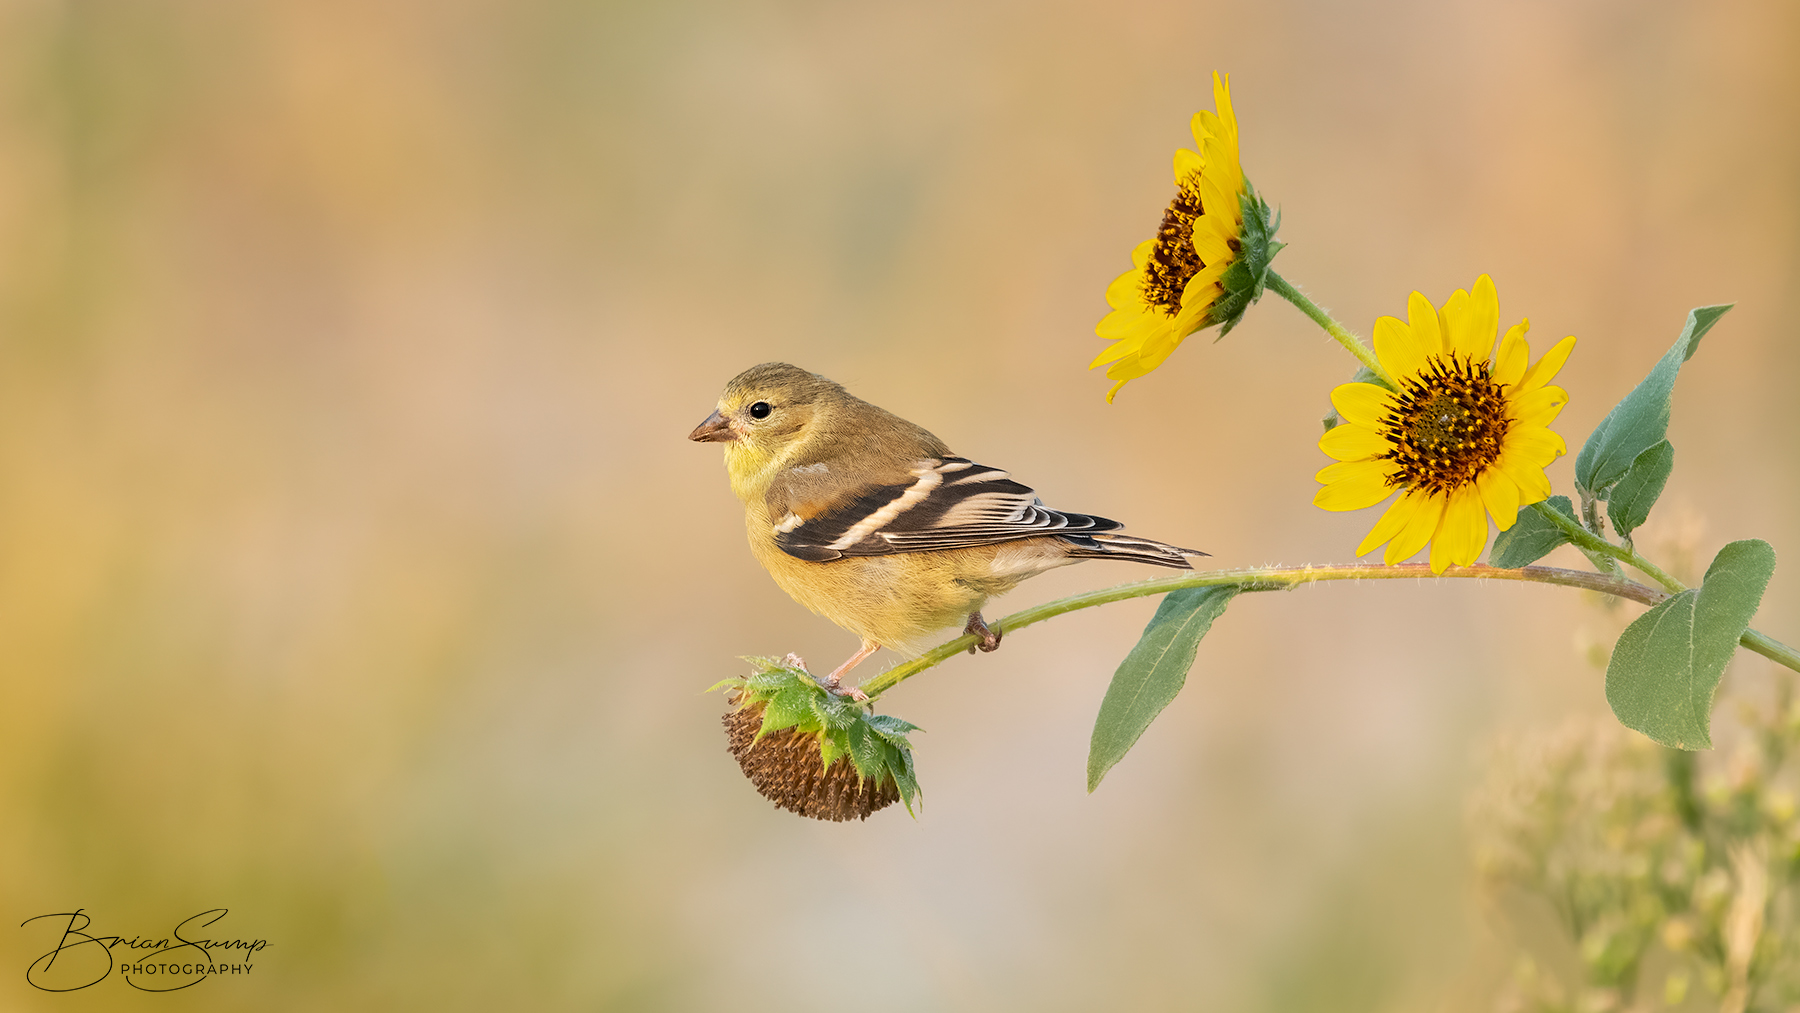 Name:  20200906-Goldfinch-Sunflowers-Brian-Sump_BMS5177-FORUM-SIG-SS45_.3-touch.jpg